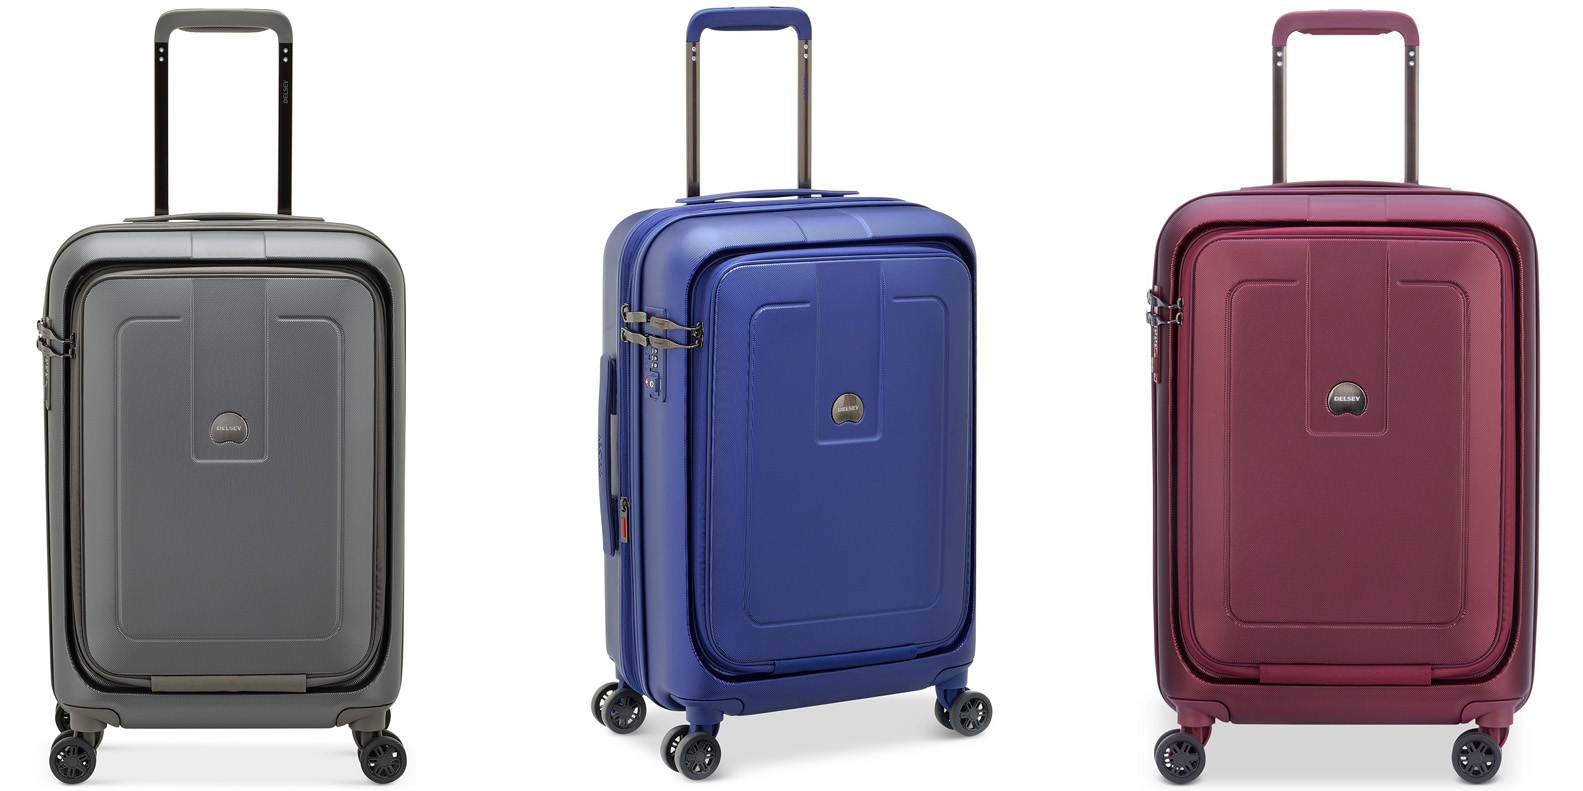 Get ready to jet set w/ the Delsey Helium Shadow Suitcase for $112 (Orig. $280)